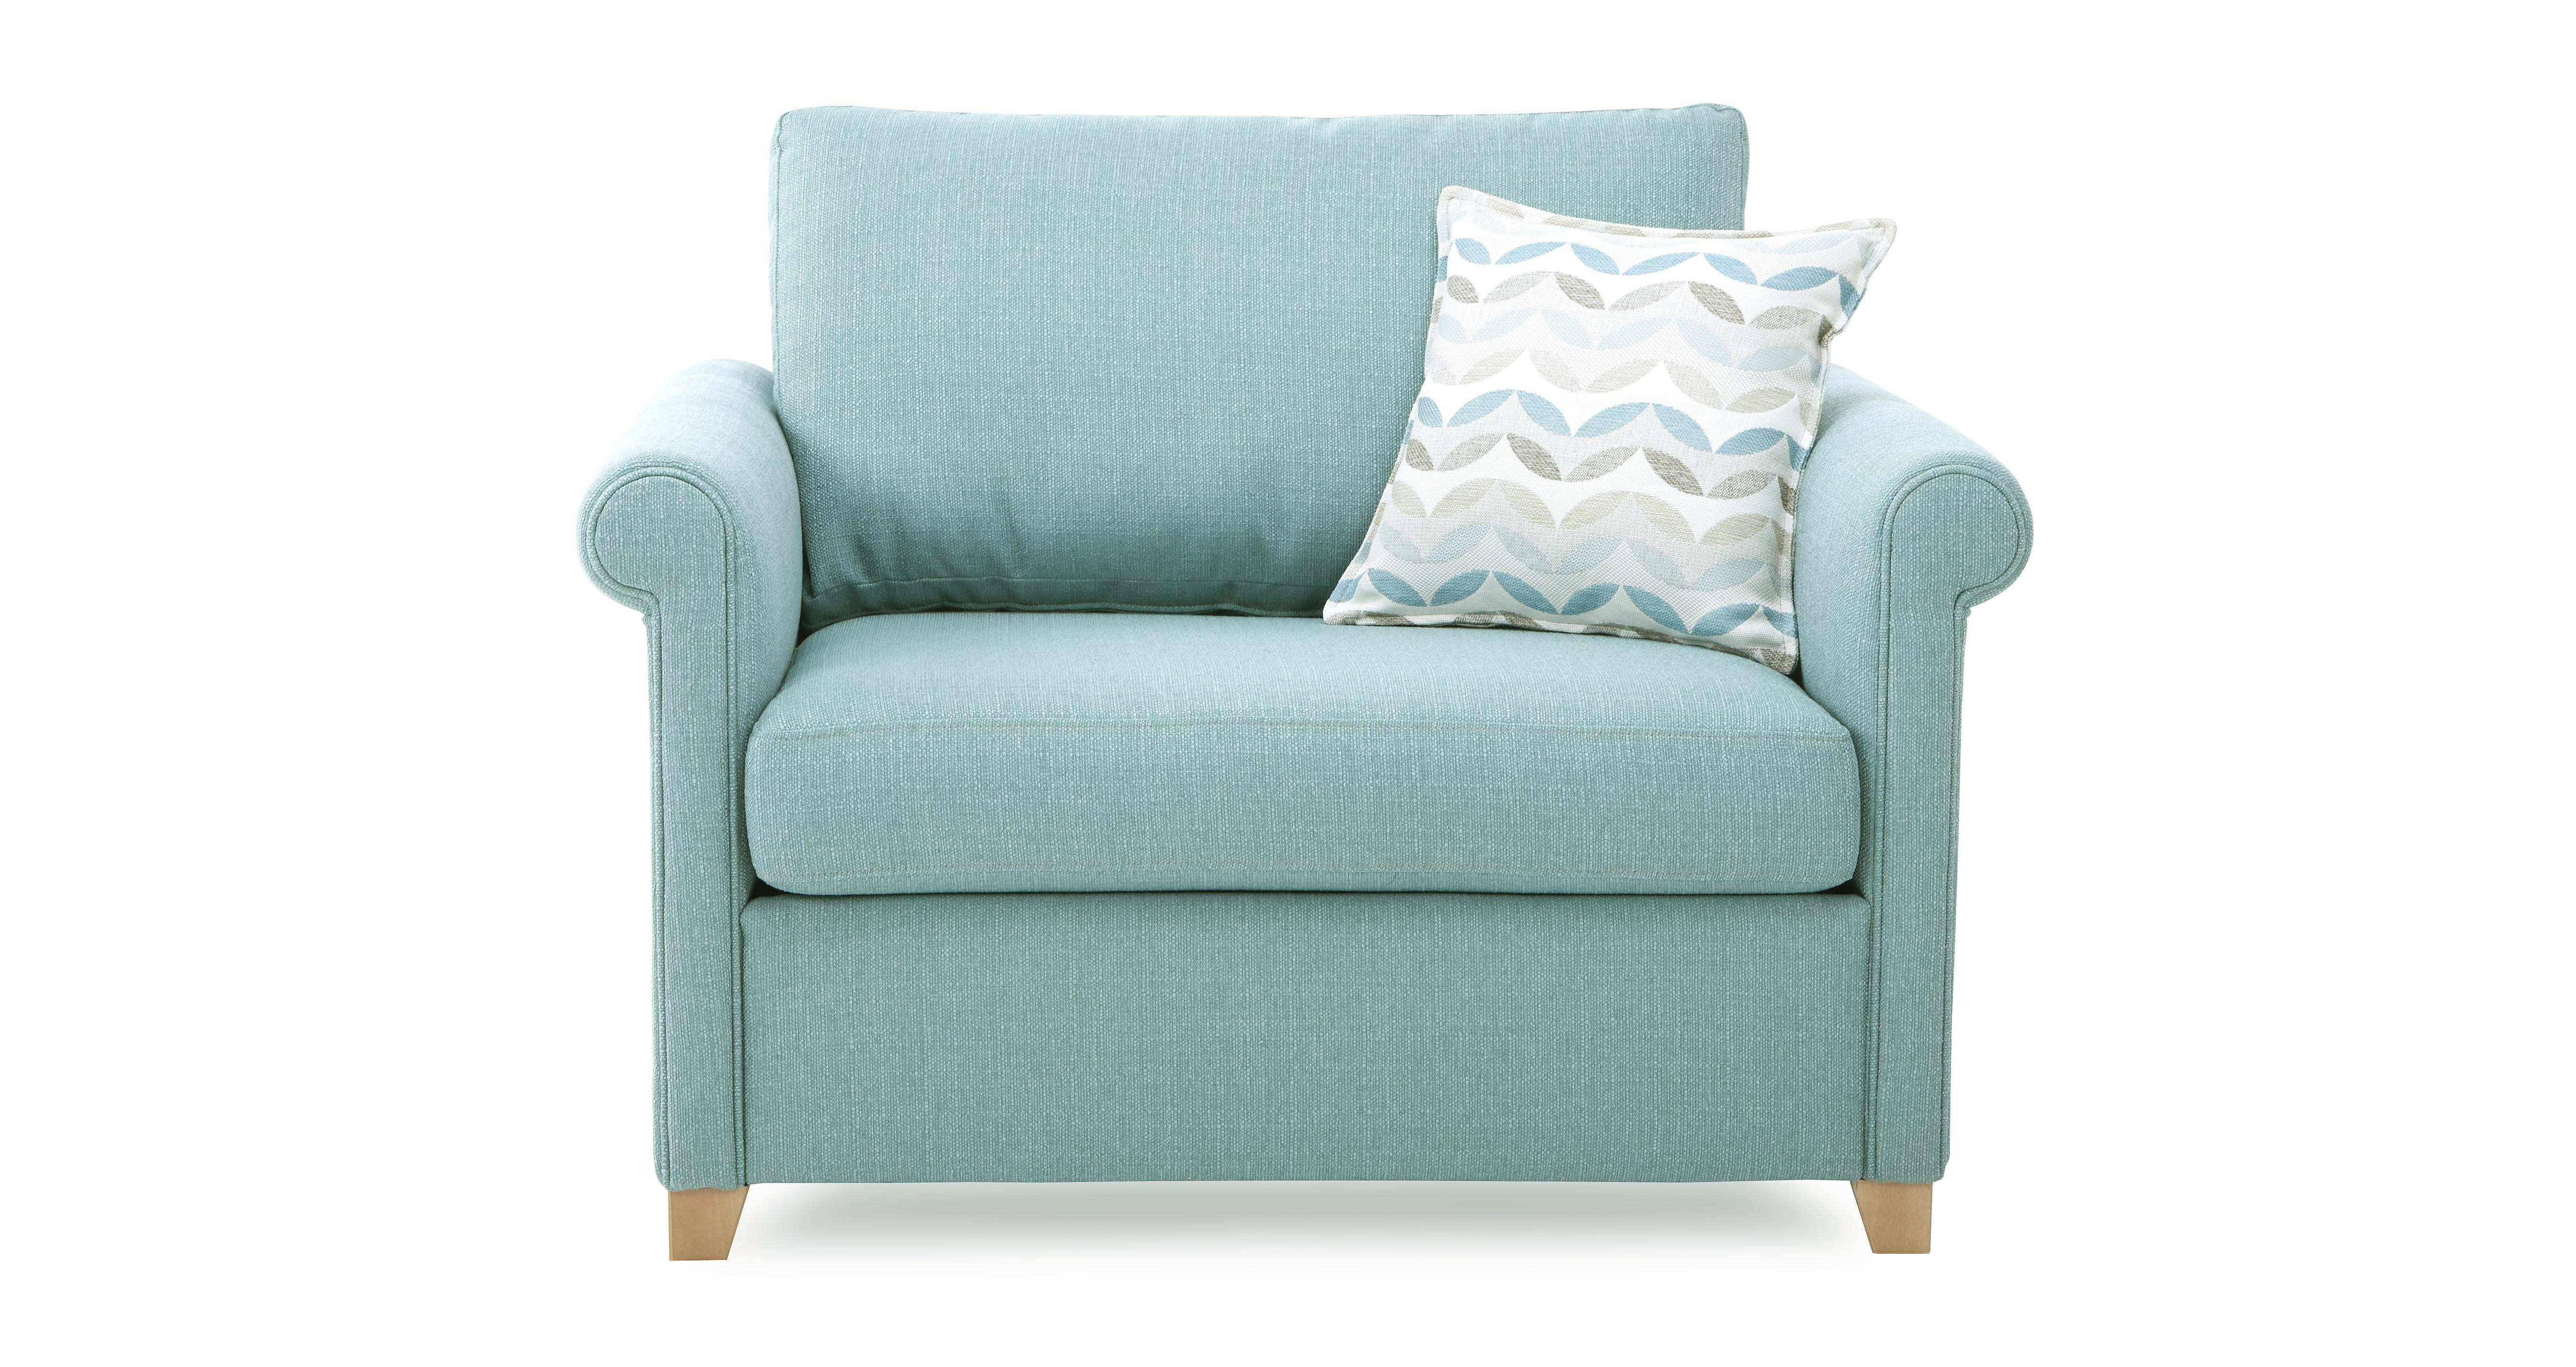 2019 Cheap Single Sofa Bed Chairs Inside Brisbane Armless Single Sofabed Sofa Bed Specialists From Creative (View 20 of 20)